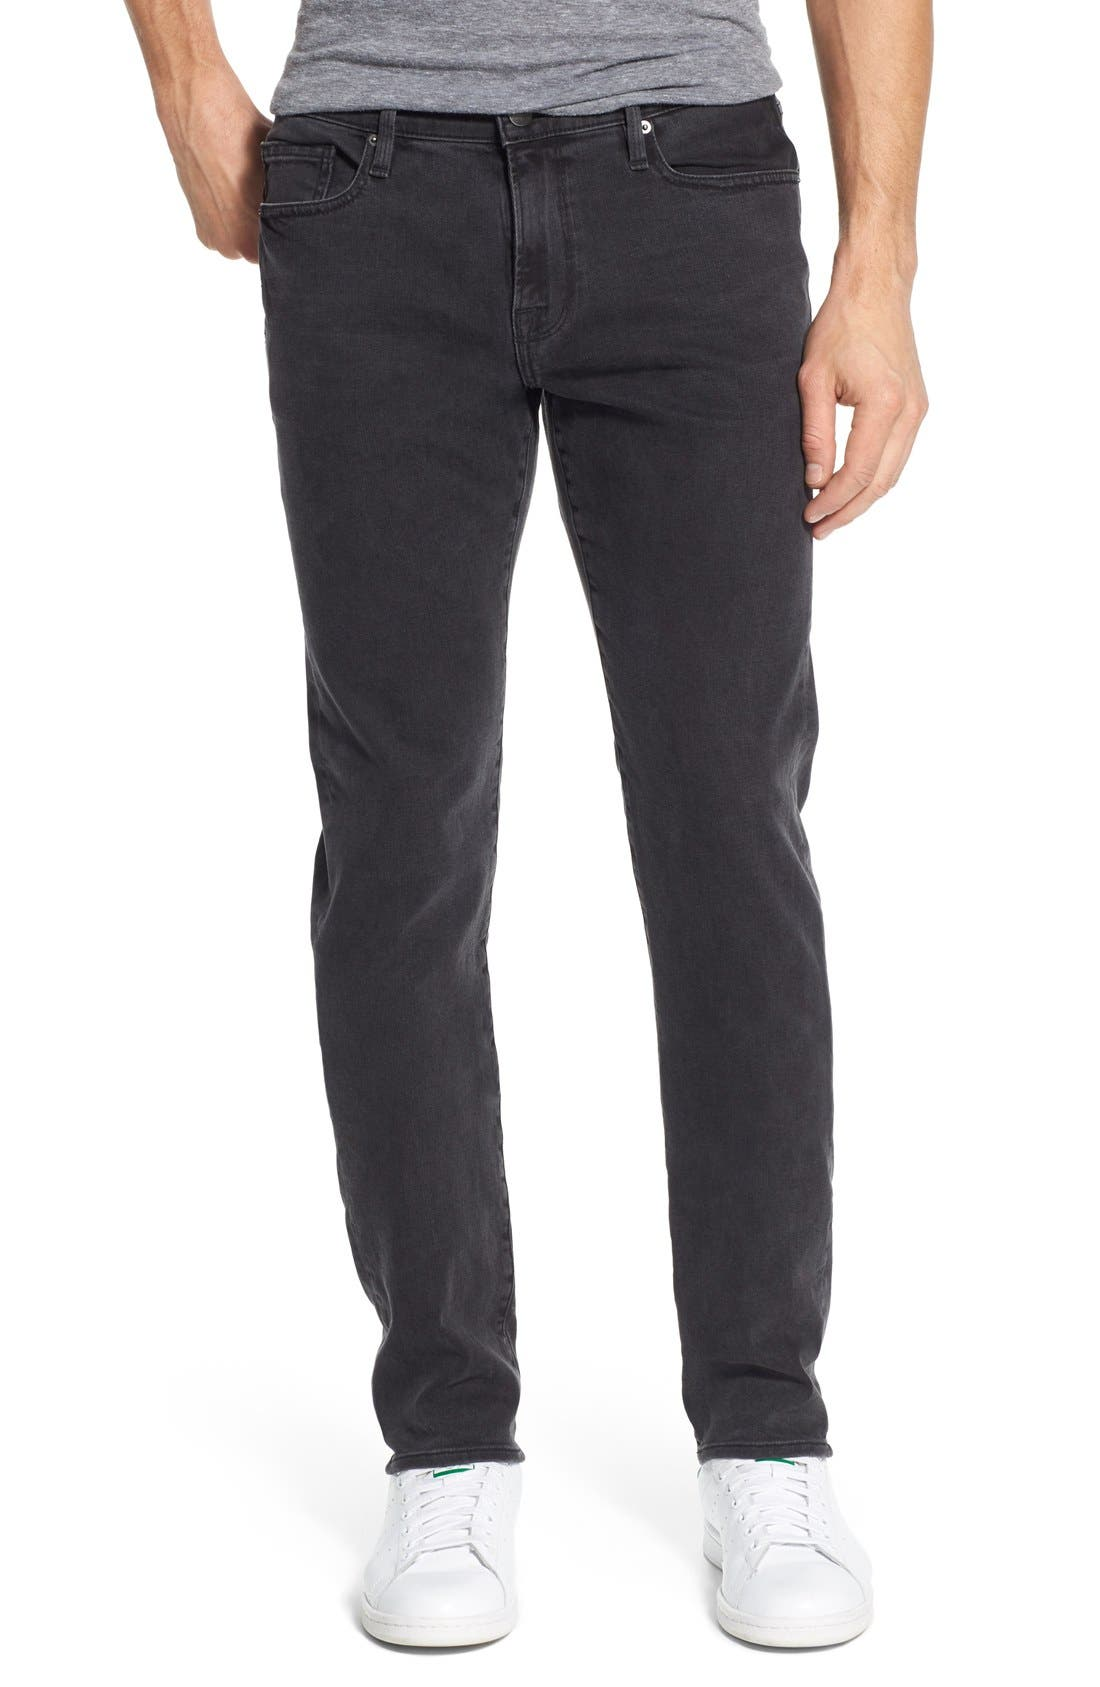 'L'Homme' Skinny Fit Jeans,                             Main thumbnail 1, color,                             FADE TO GREY